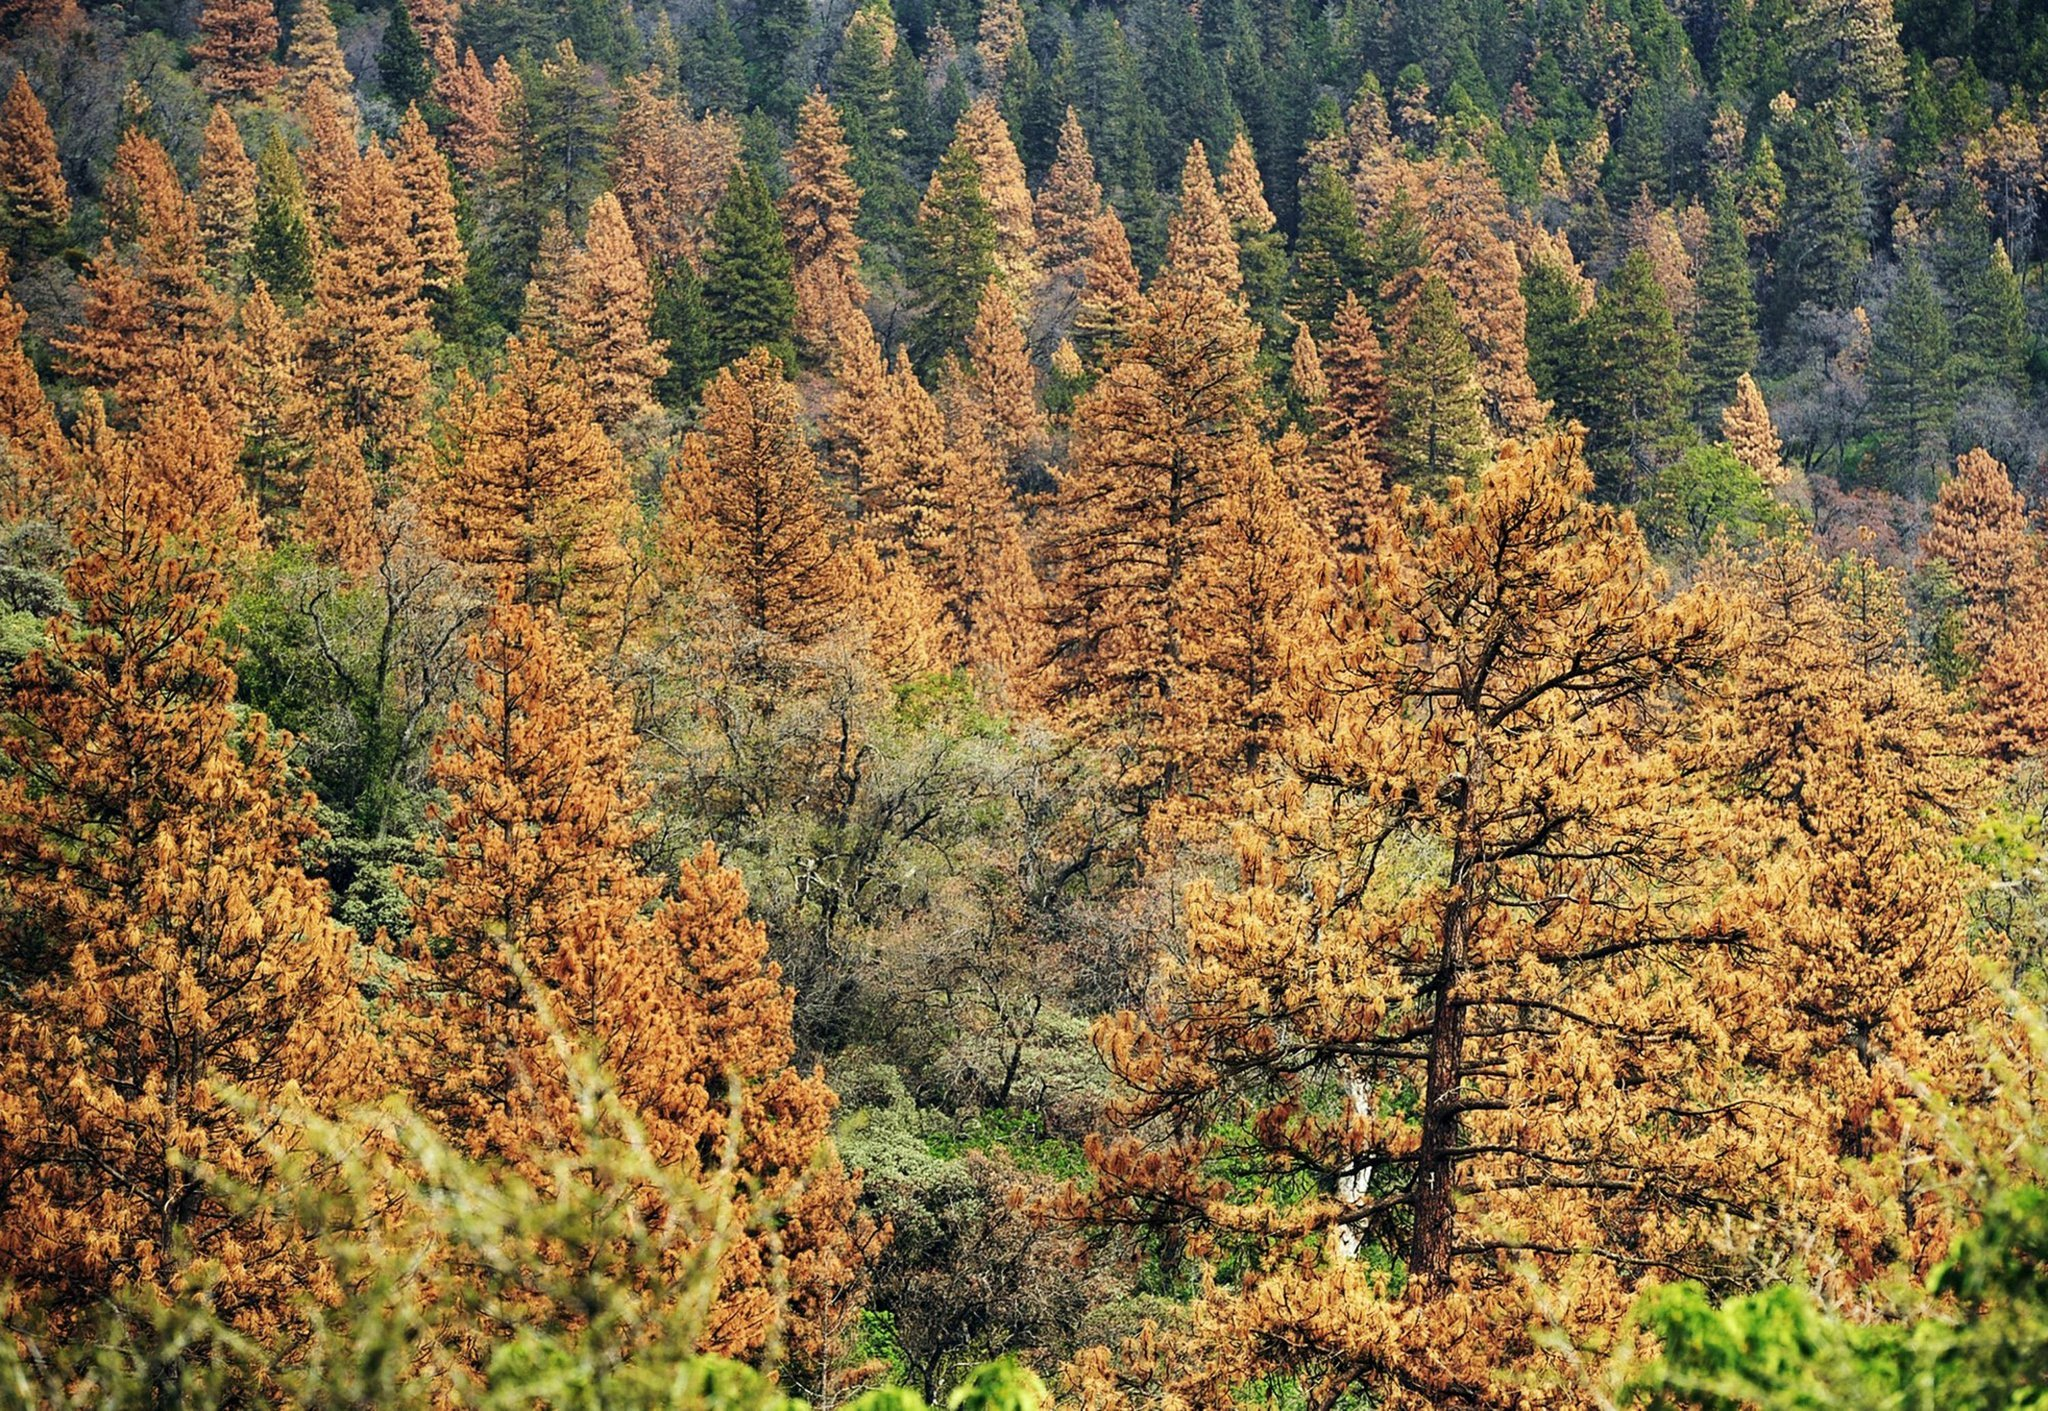 Sierra Nevada pine tree die-off worsens as beetles thrive in drought